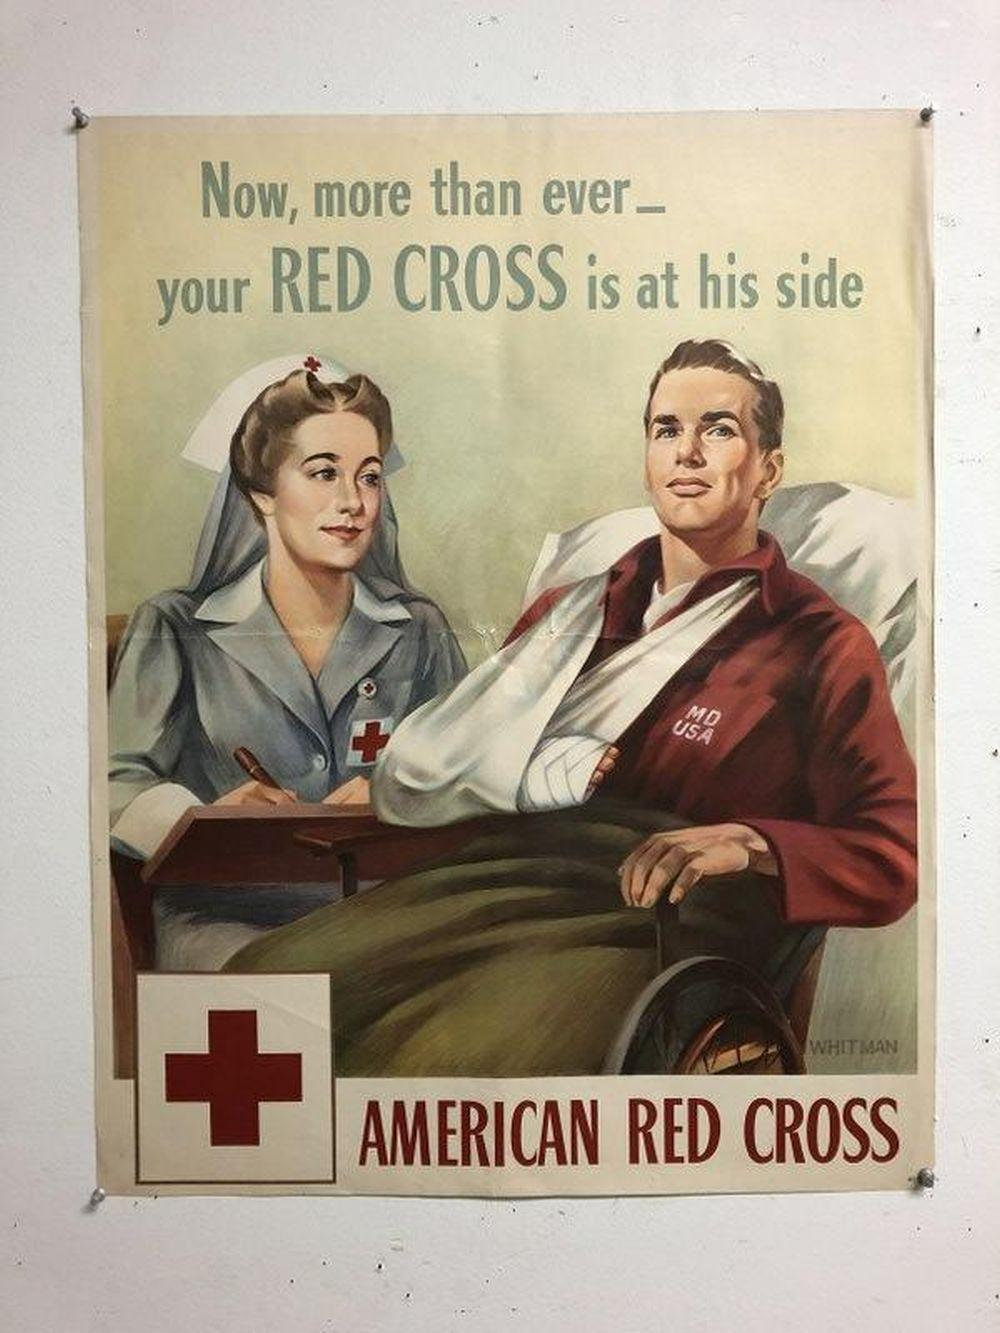 WWII AMERICAN RED CROSS POSTER, ARTIST IS WHITMAN, NICE